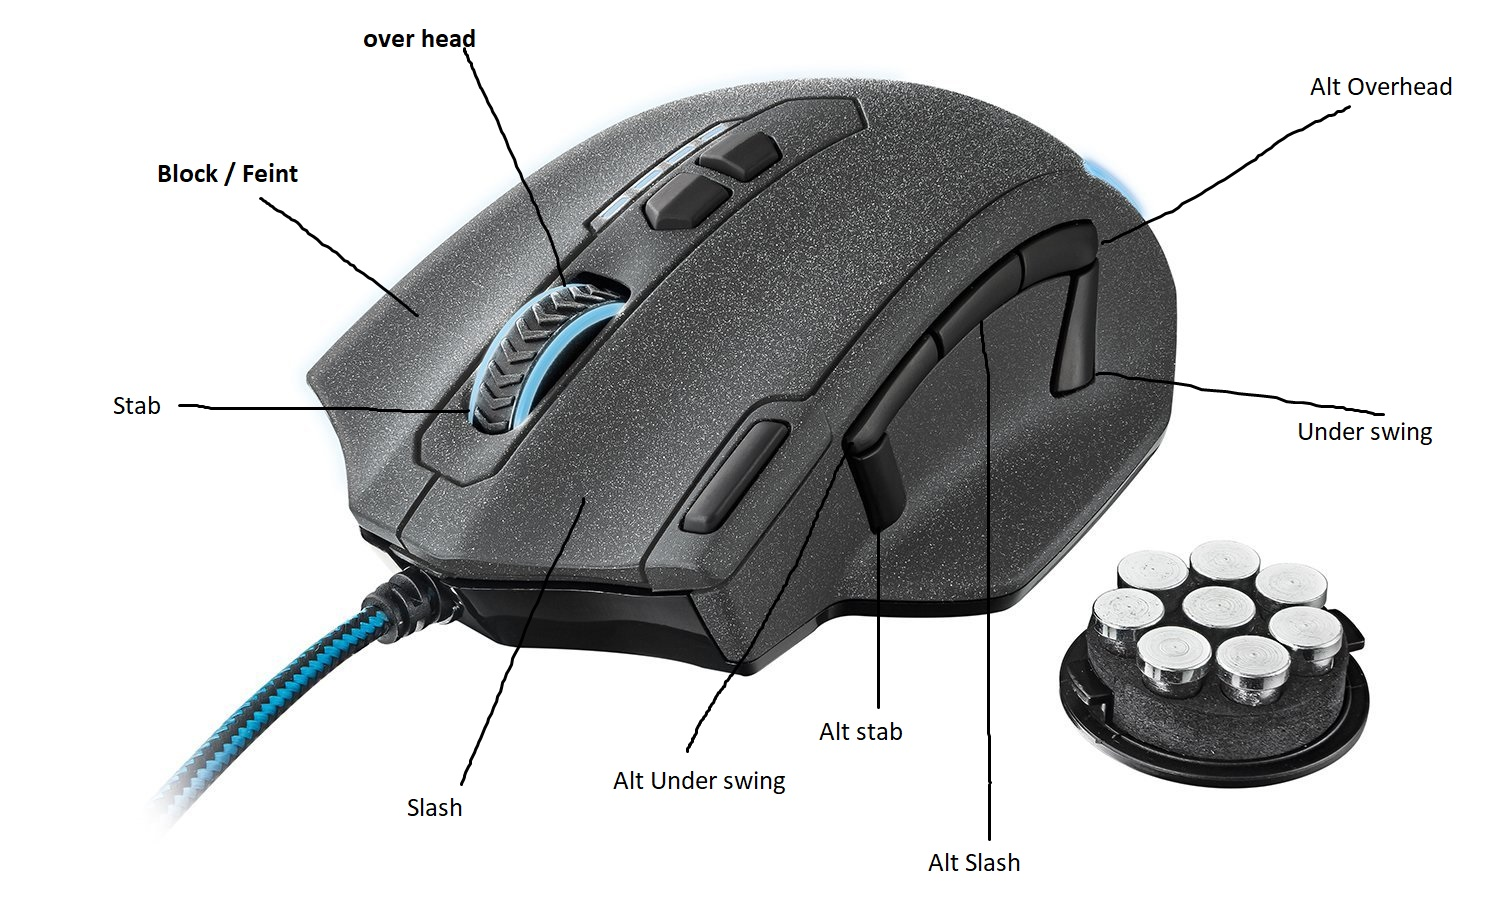 best mordhau mouse with 6 side buttons? preferably good